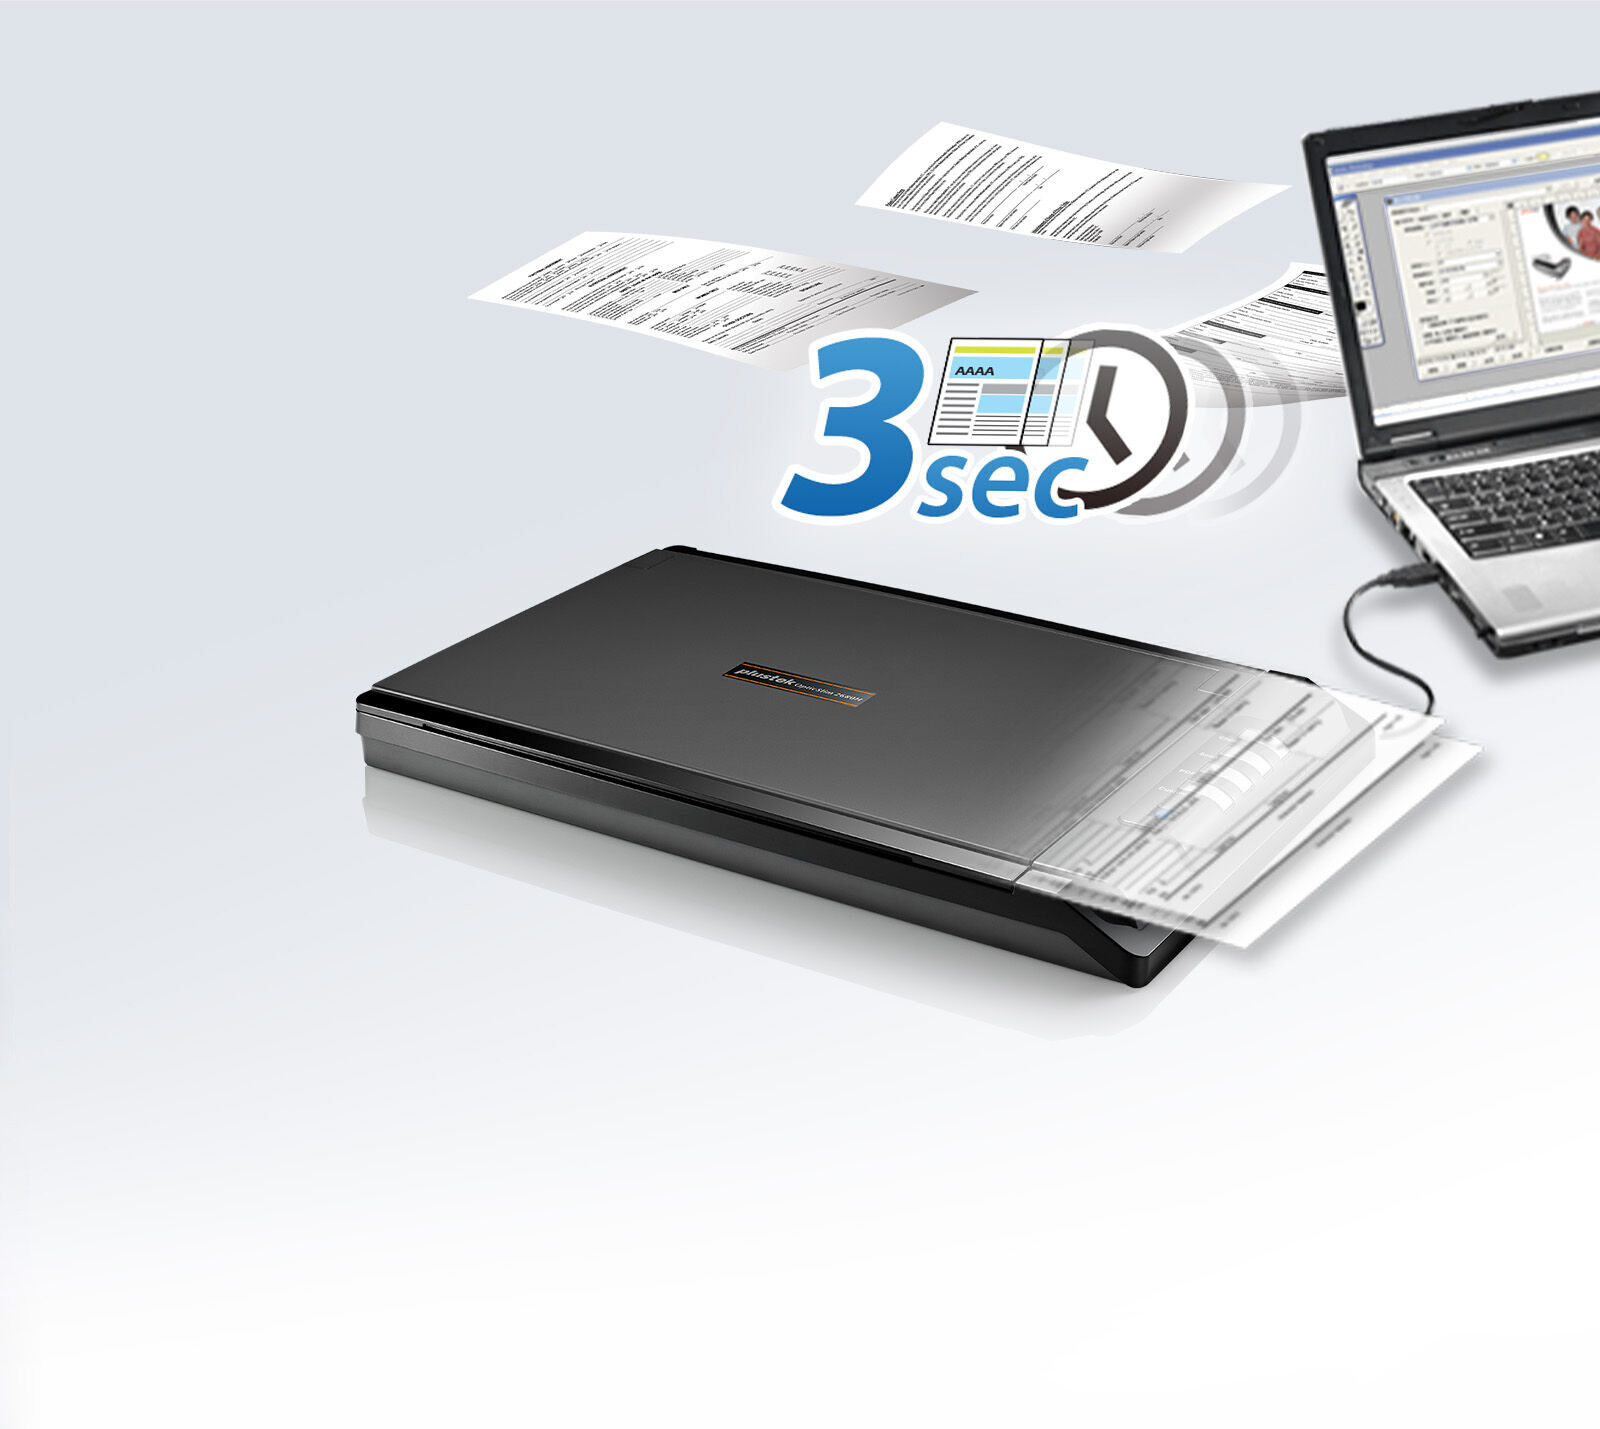 Scans quickly and easily up to 3 seconds.